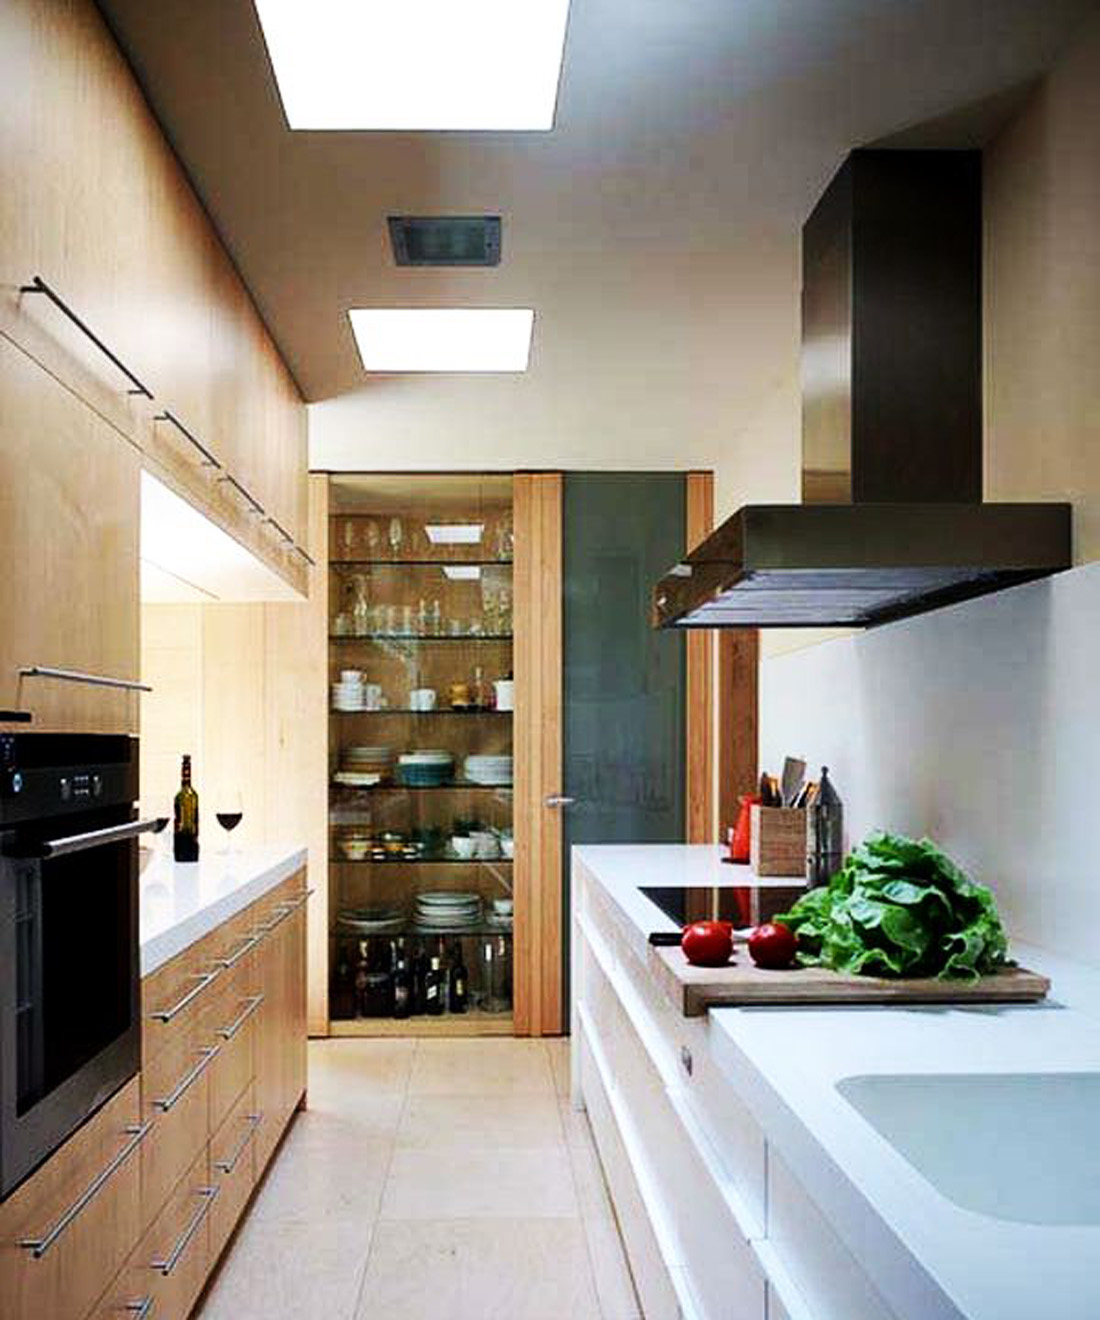 25 modern small kitchen design ideas - Modern kitchen design and decor ...